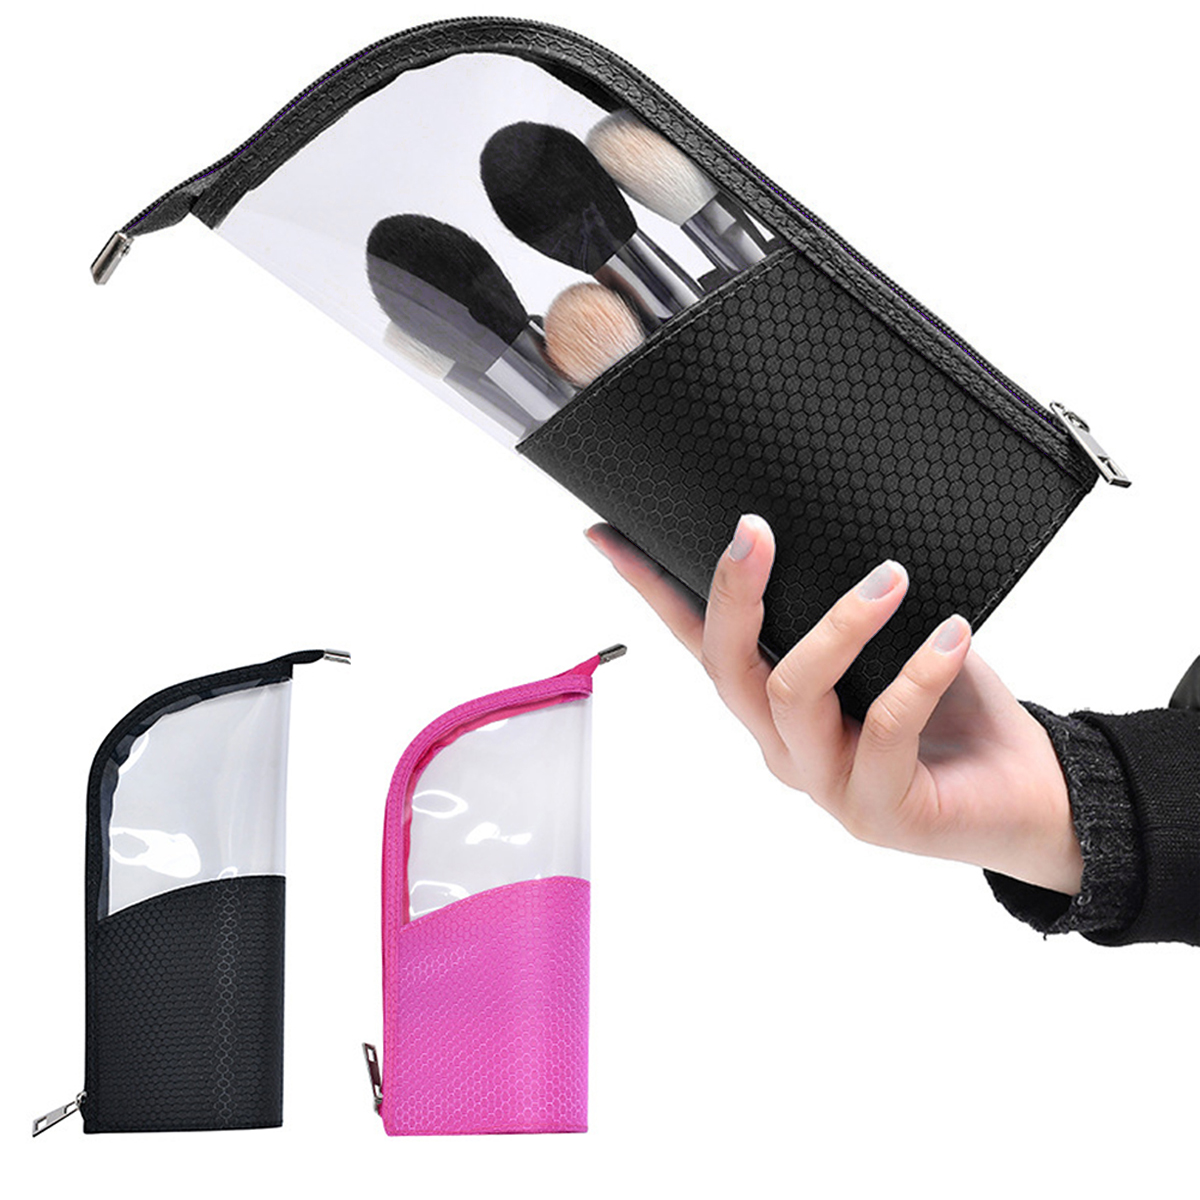 Waterproof Travel Cosmetic Bag Makeup Brushes Holder Organizer Bag Stand-Up Pencil Case MakeUp Pouch Bags For Female Makeup Bag